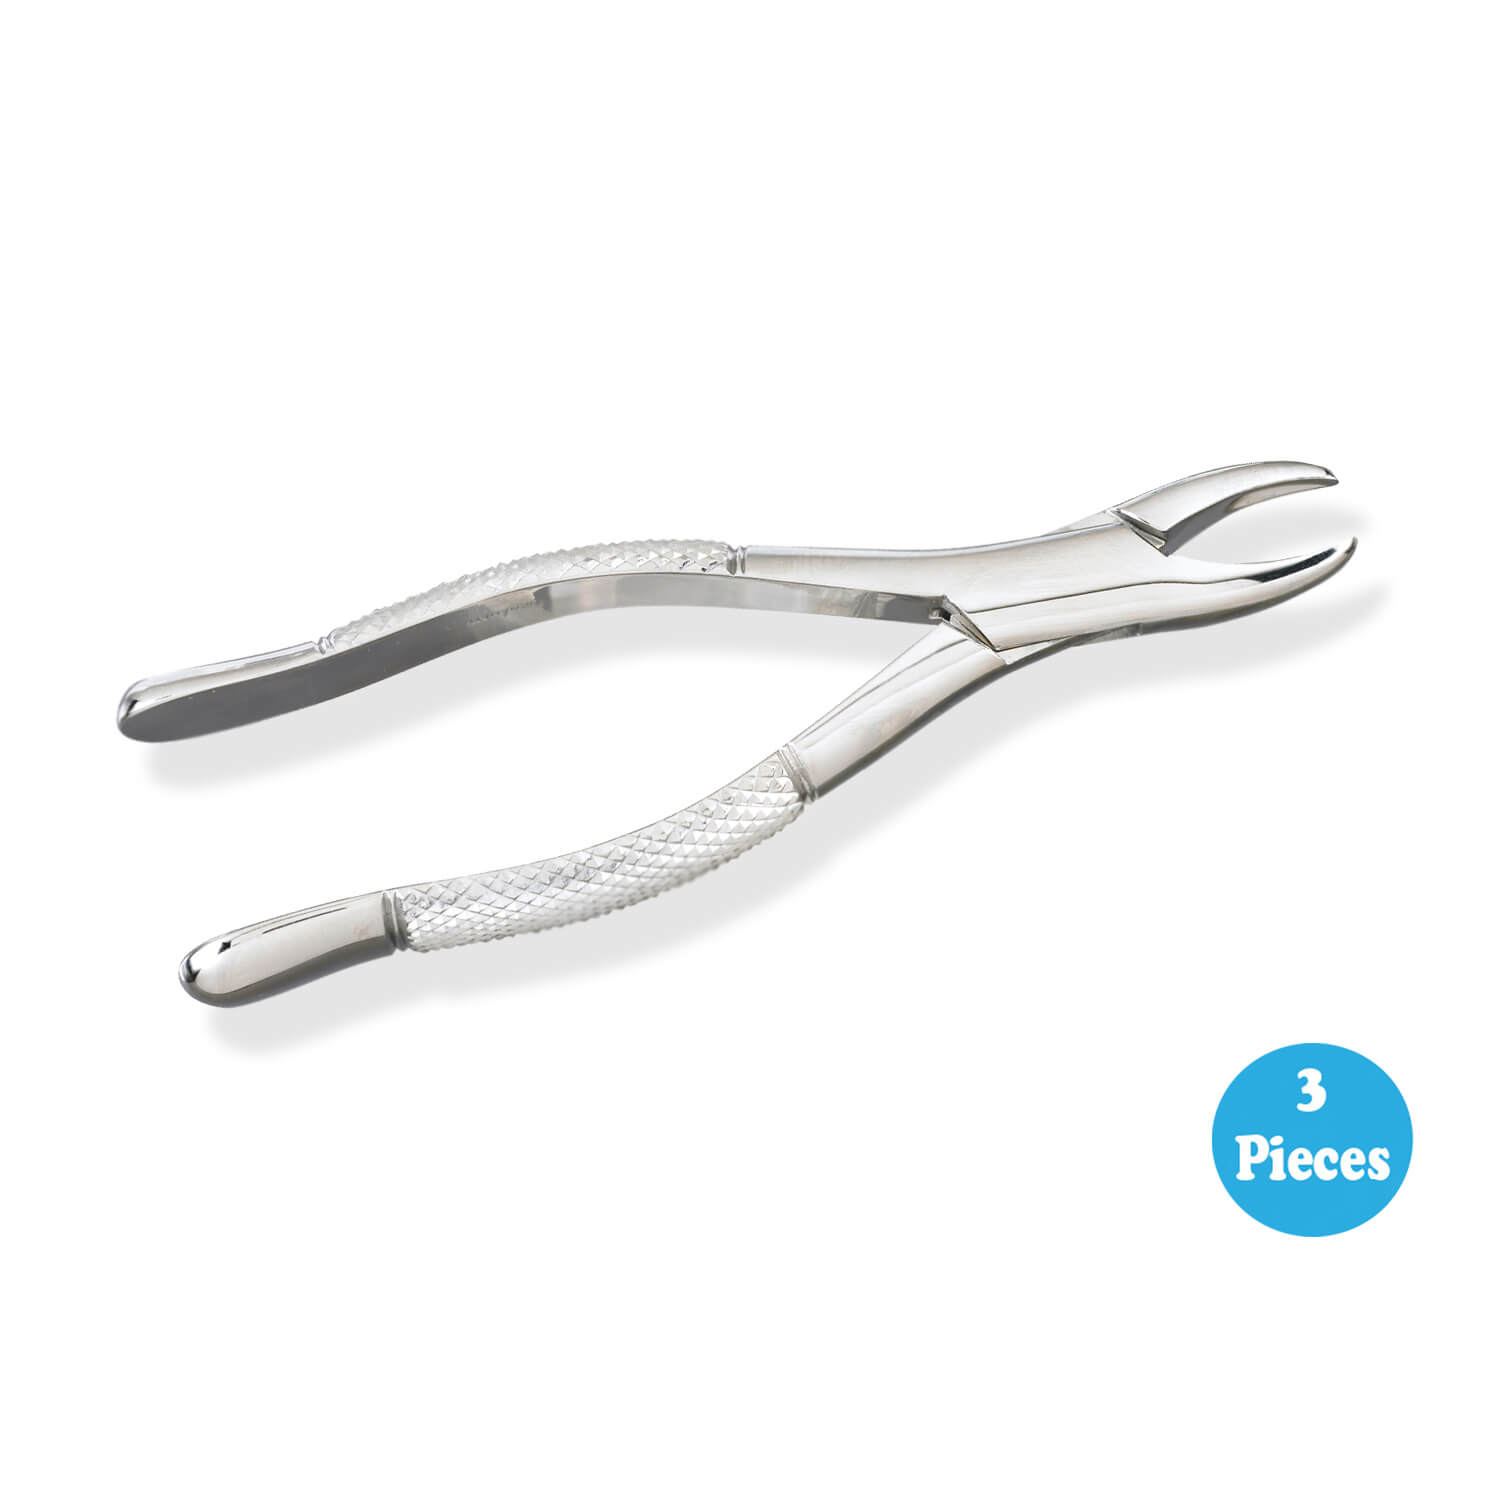 3 Extracting forceps Dental Surgical 1 Hen